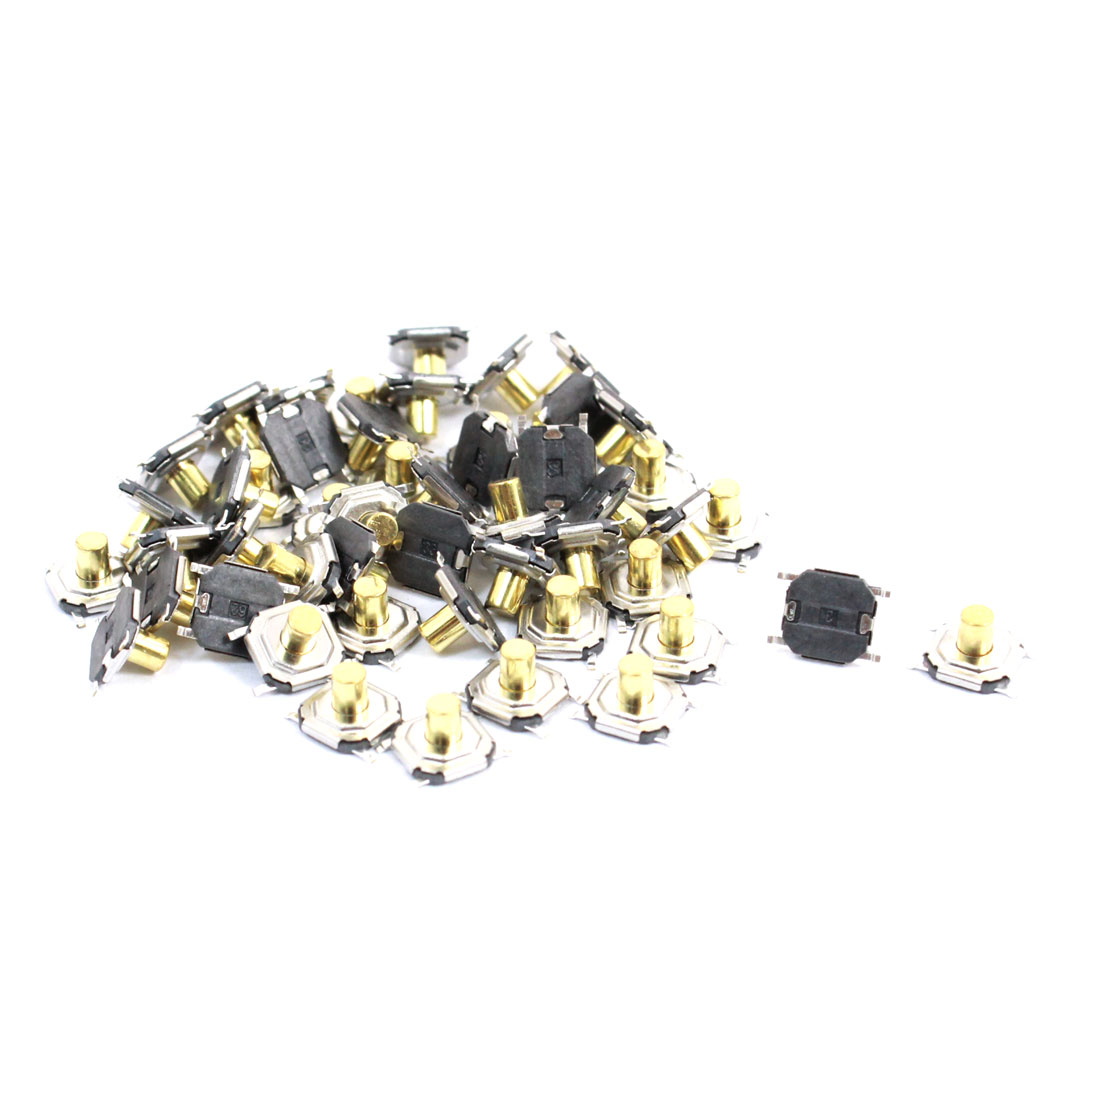 50 Pcs 4x4x3.5mm 4 Pin PCB Momentary Tactile Tact Push Button Switches